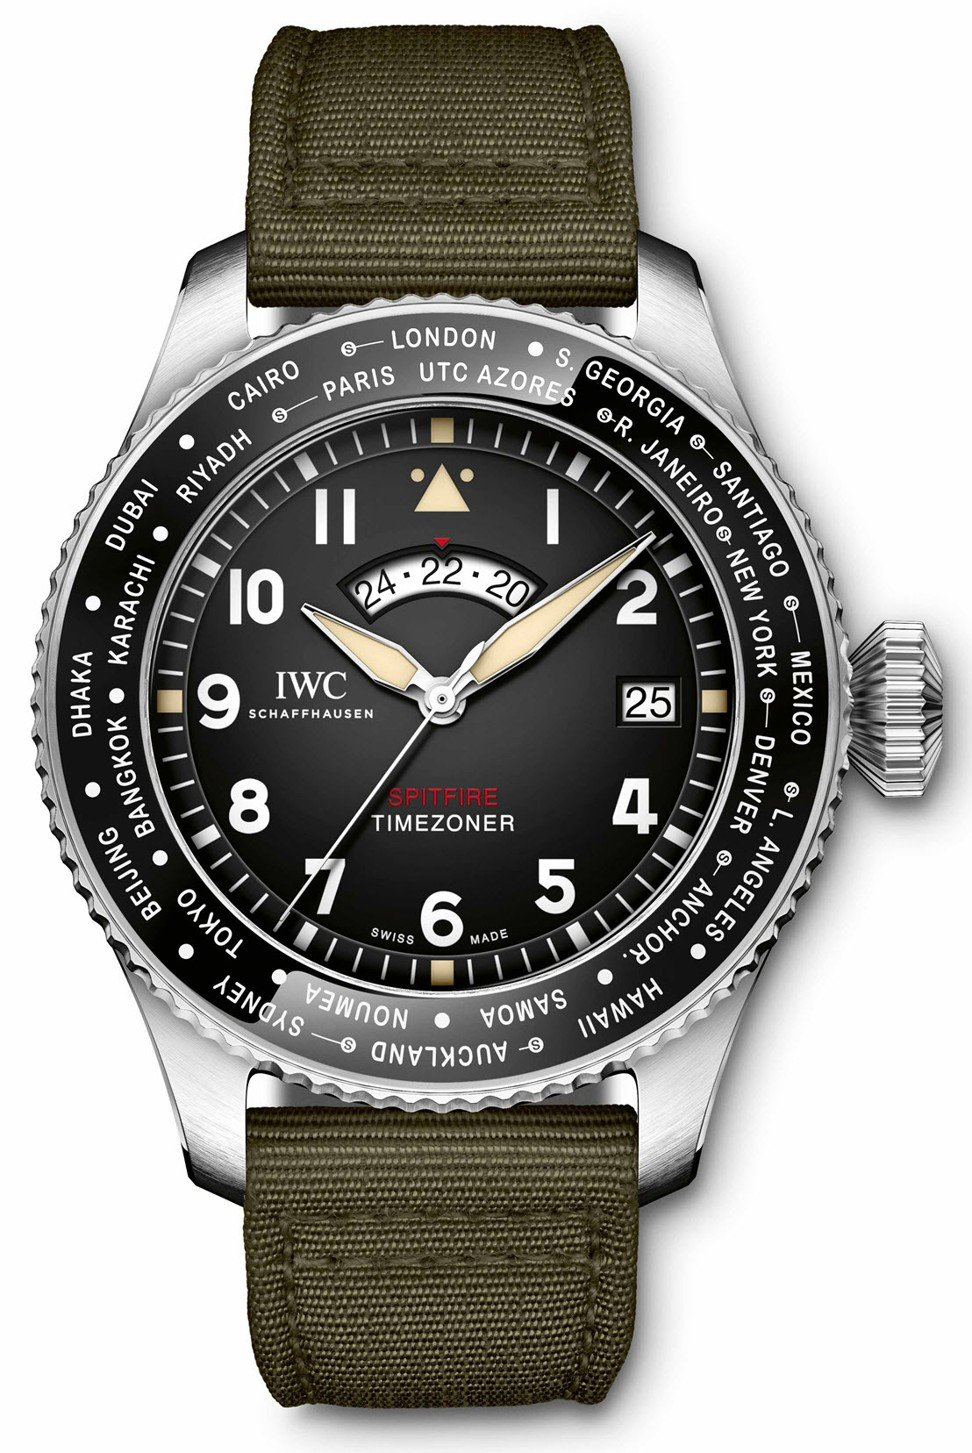 Three of the best pilot's watches for military-history and aviation buffs